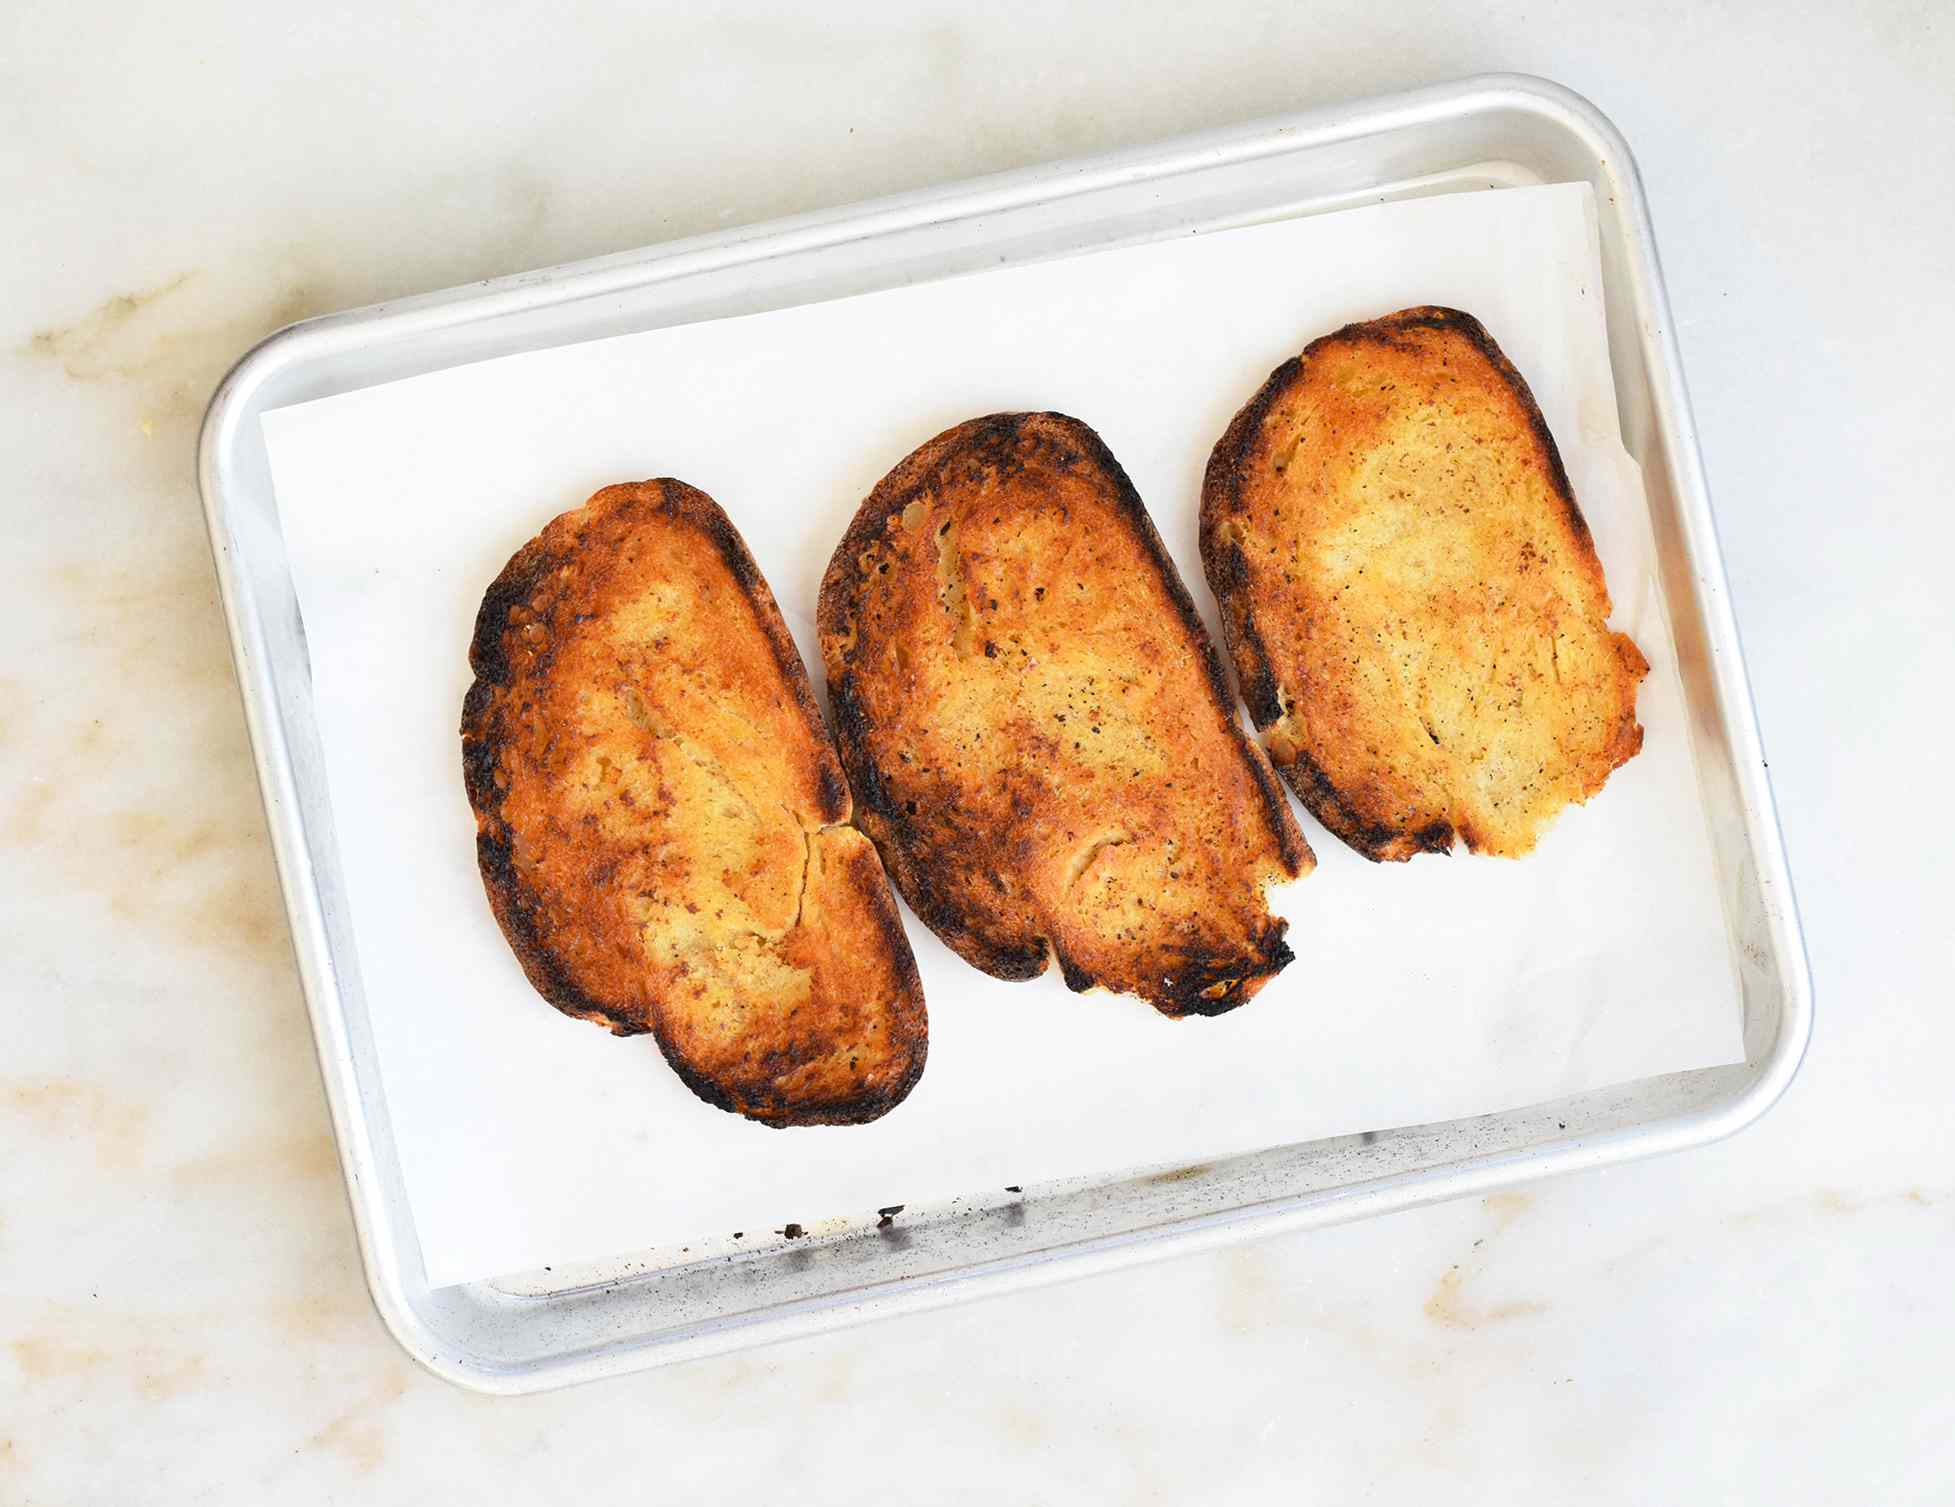 toasted bread on a sheet pan